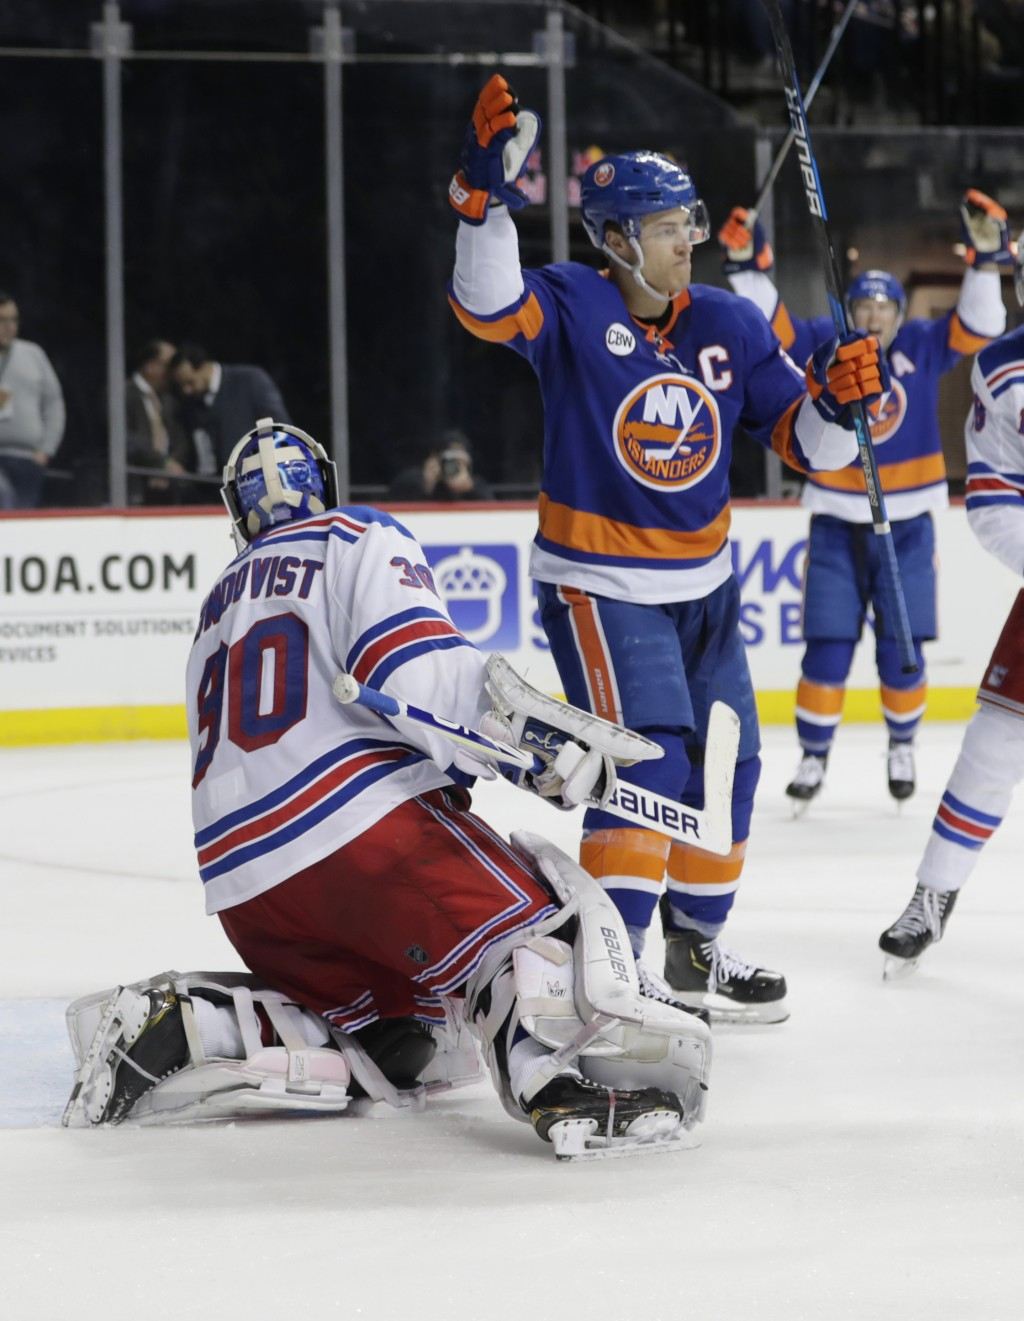 New York Islanders' Anders Lee (27) celebrates after scoring a goal on New York Rangers goaltender Henrik Lundqvist (30) during the second period of a